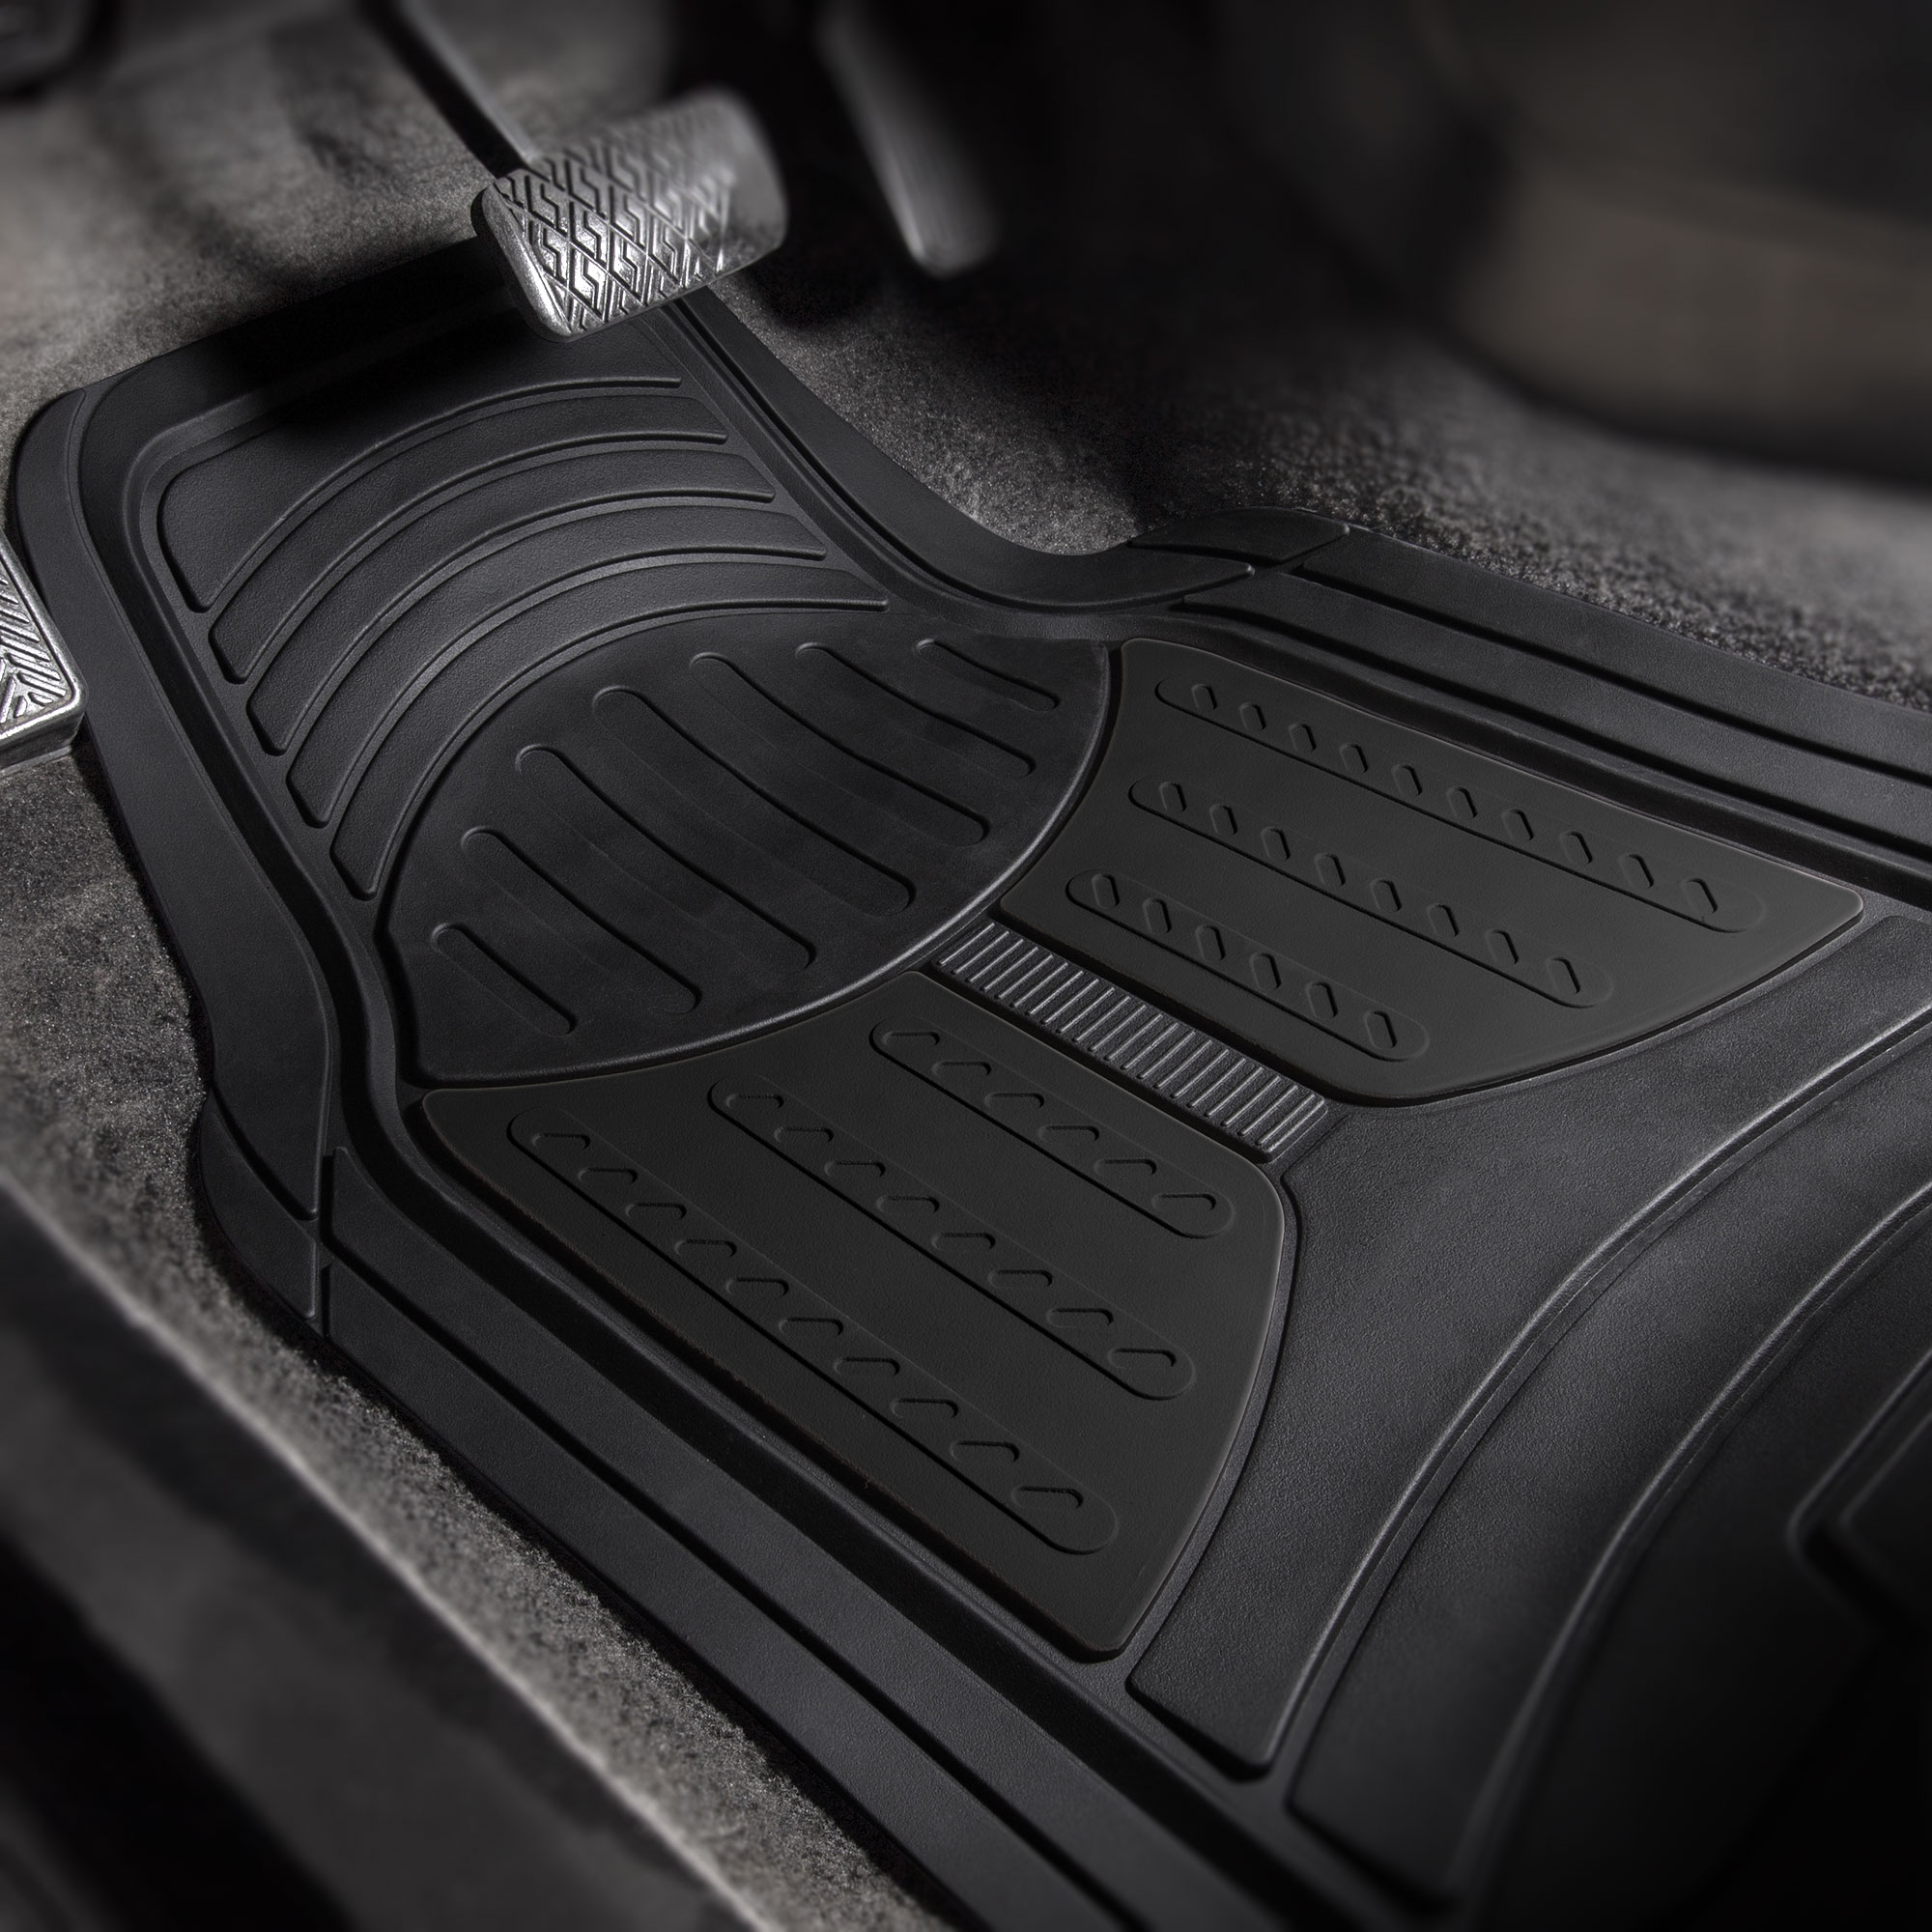 thumbnail 5 - Car Floor Mats for All Weather Rubber 2-Tone Design Heavy Duty - 4 Pc Set